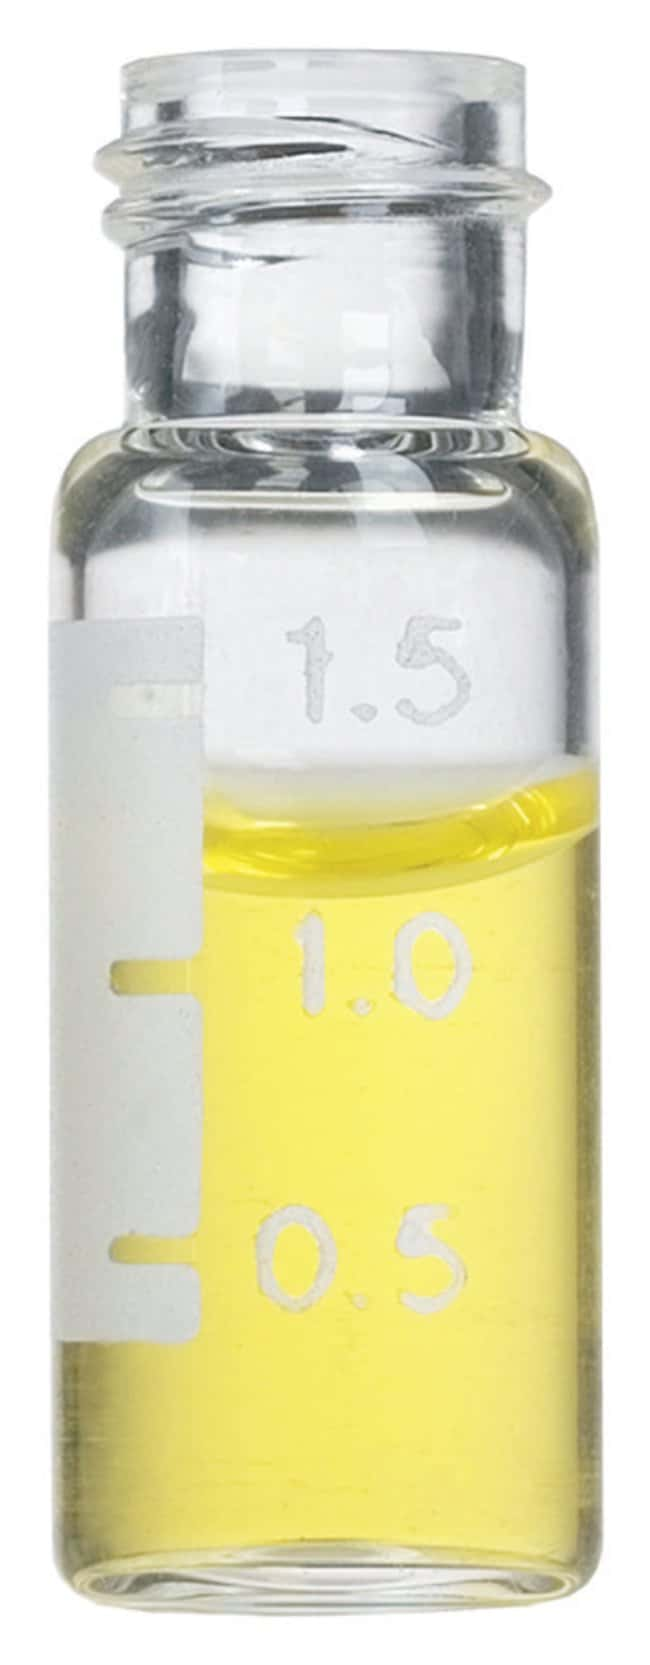 Restek 9mm Short-Cap, Screw-Thread Vials:Chromatography:Autosampler Vials,